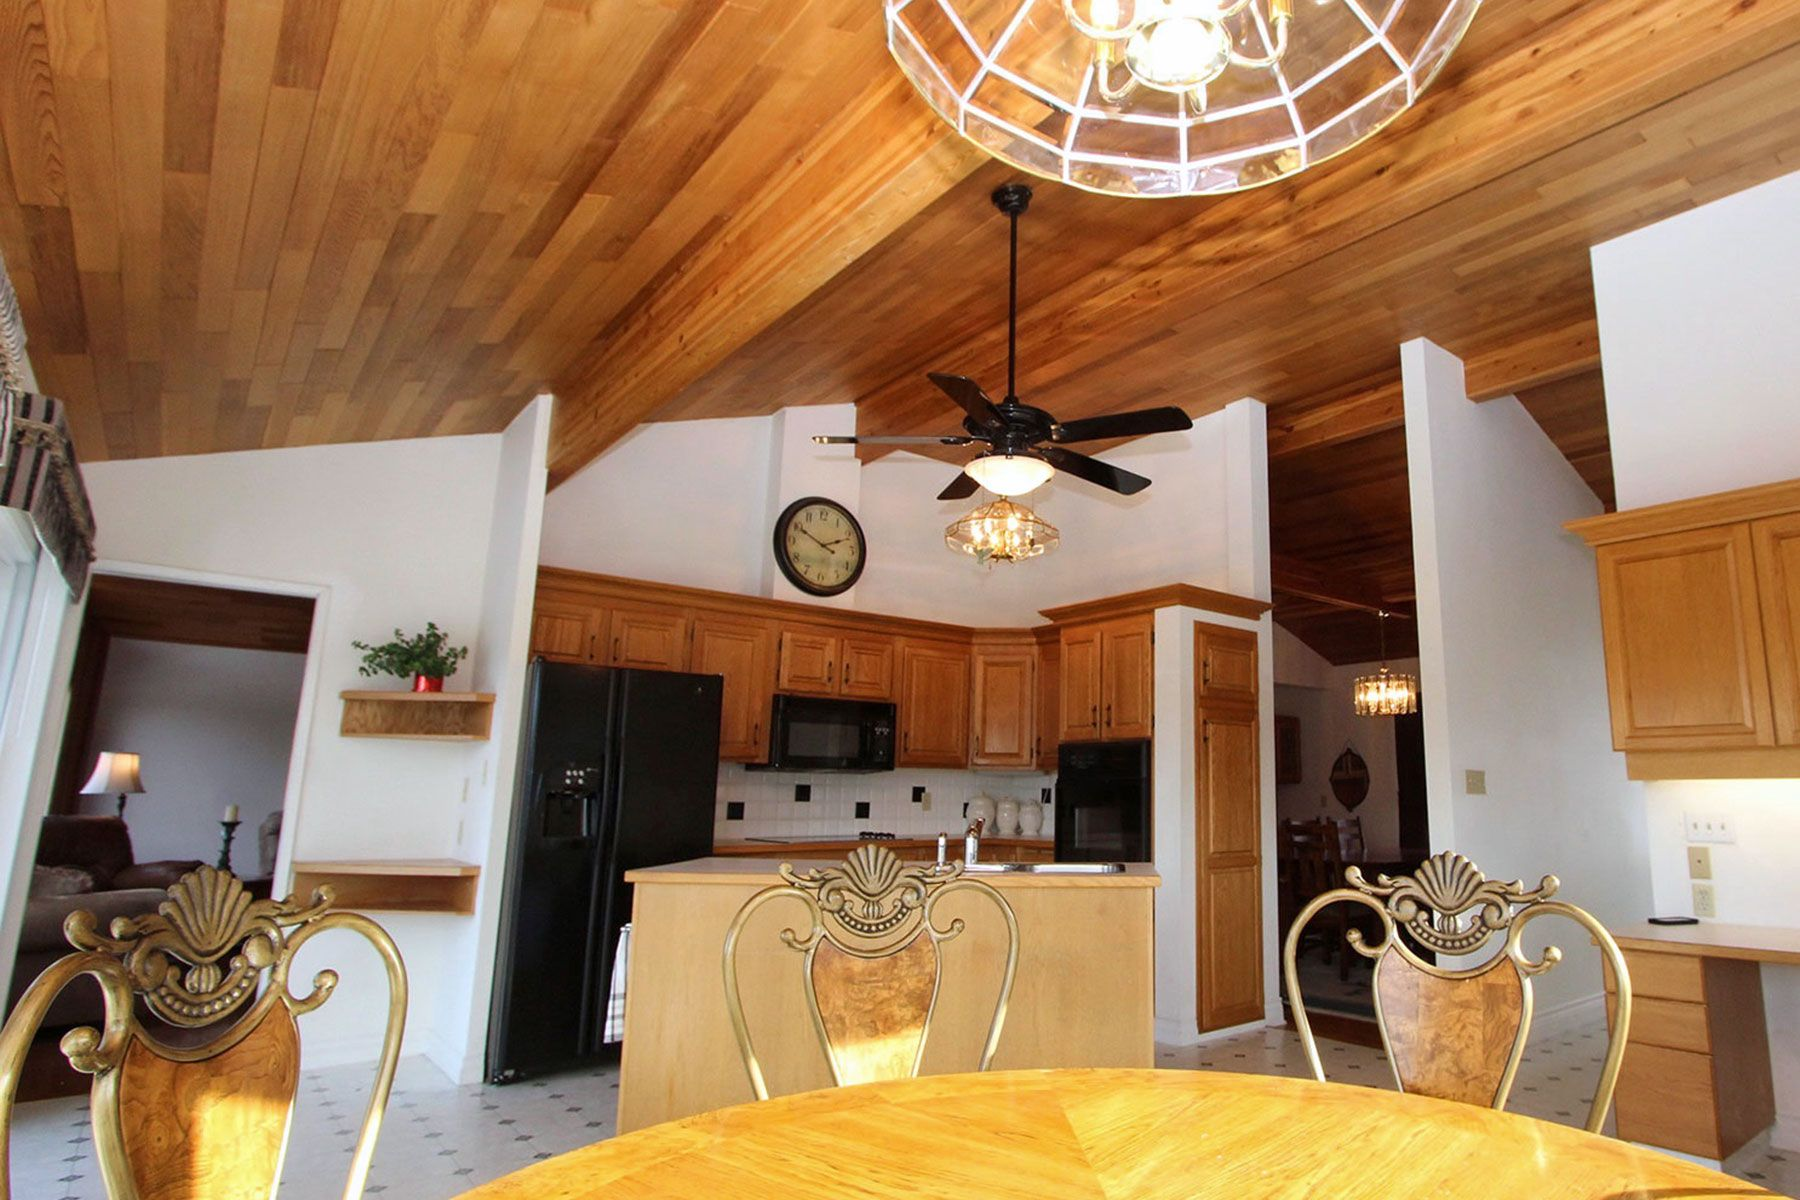 Photo 18: Photos: 1350 Trans Canada Highway in Sorrento: House for sale : MLS®# 10225818